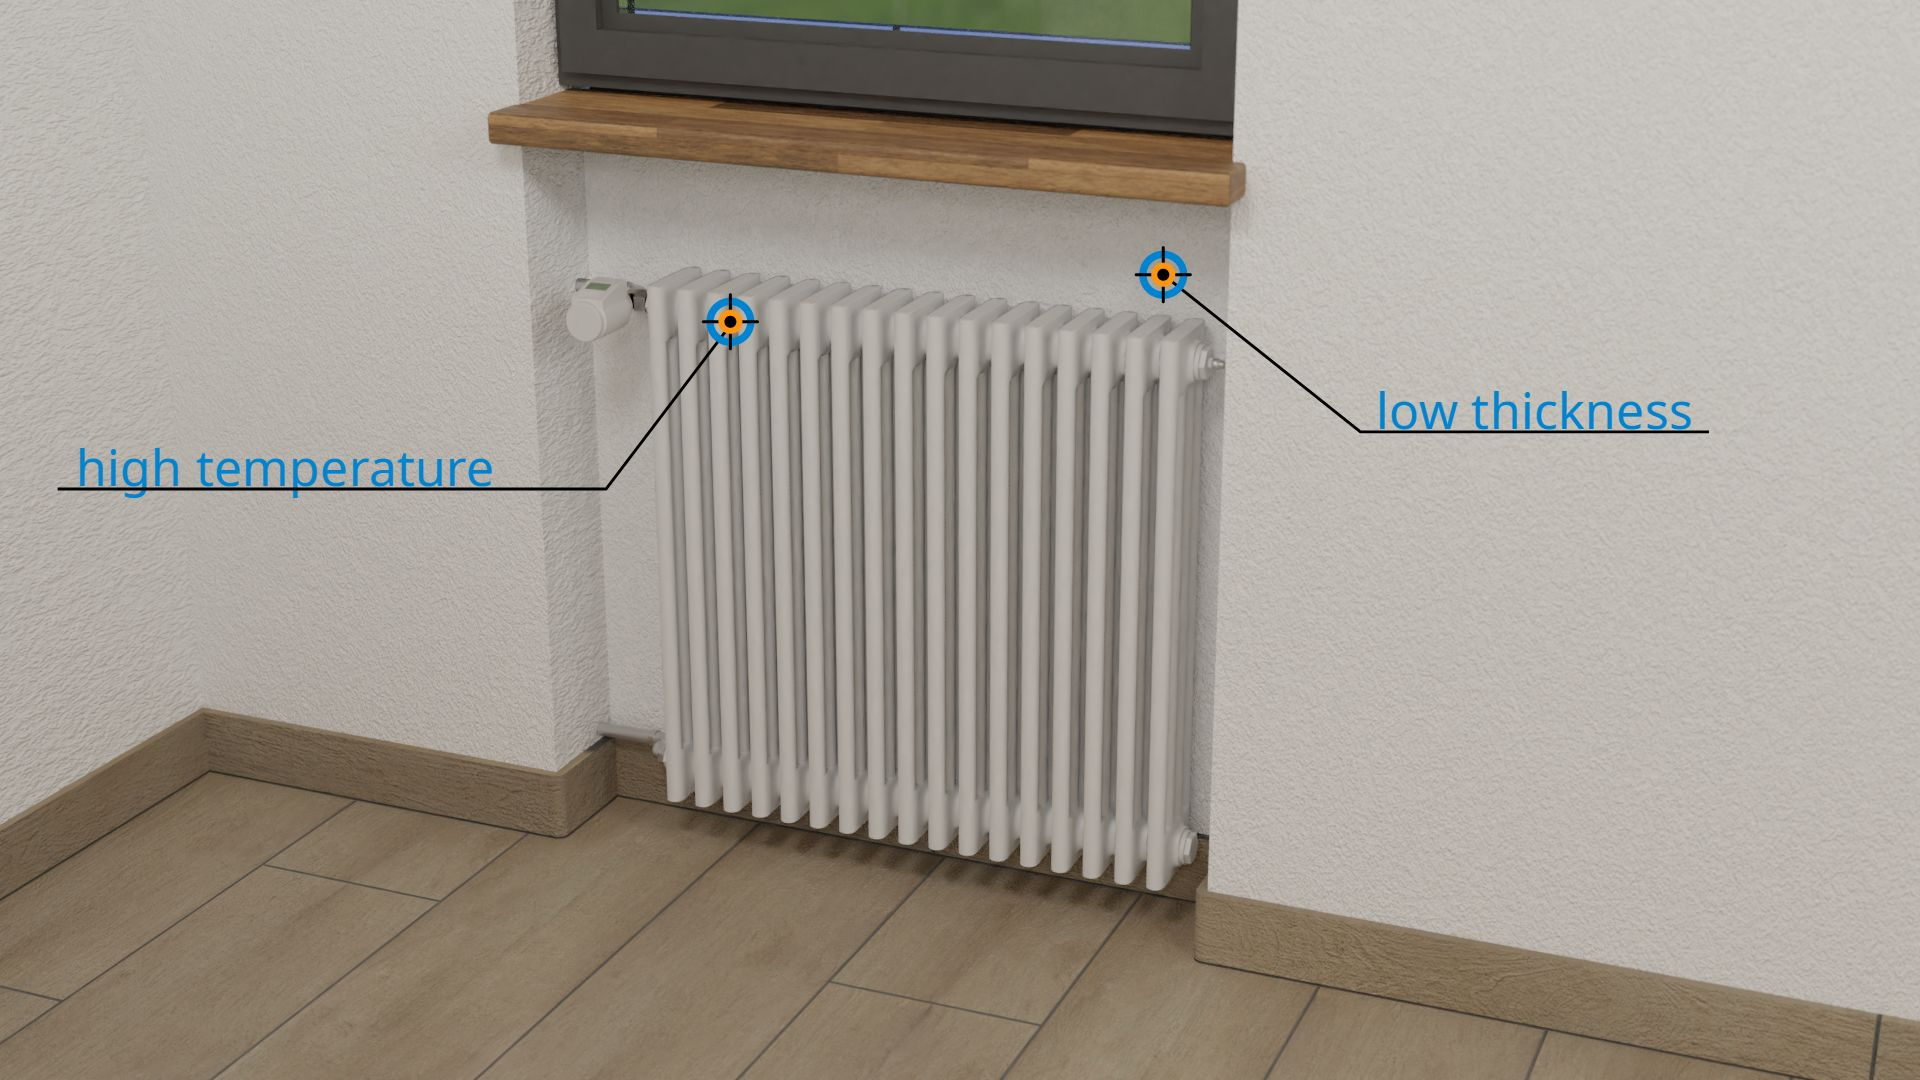 Niche for a radiator in a building